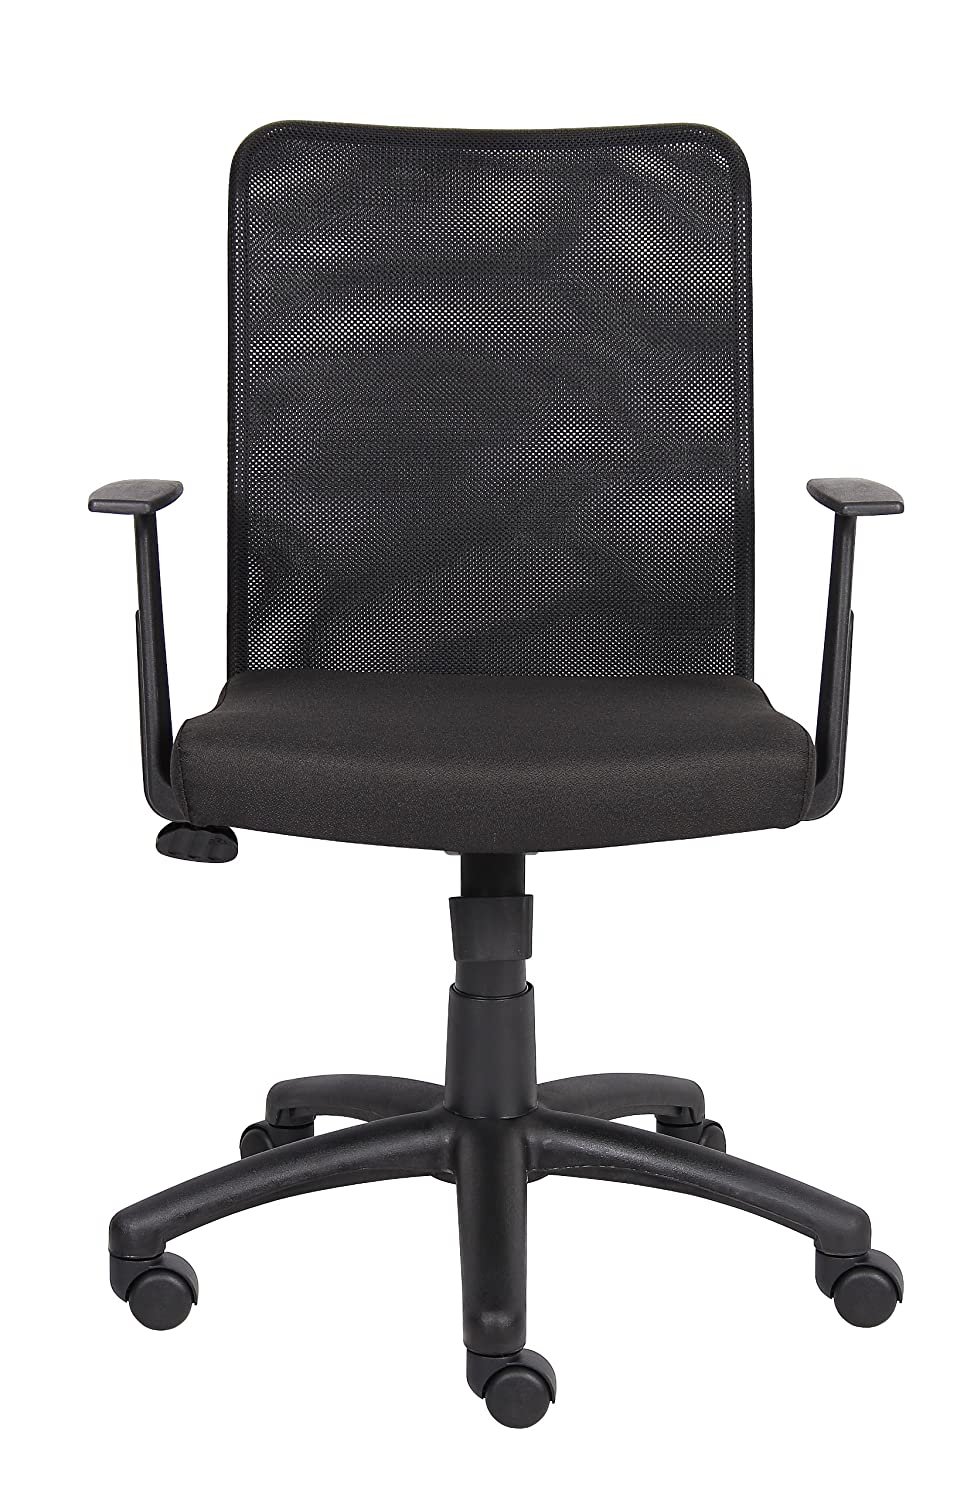 Boss Office Products B6106 Budget Mesh Task Chair with Arms in Black